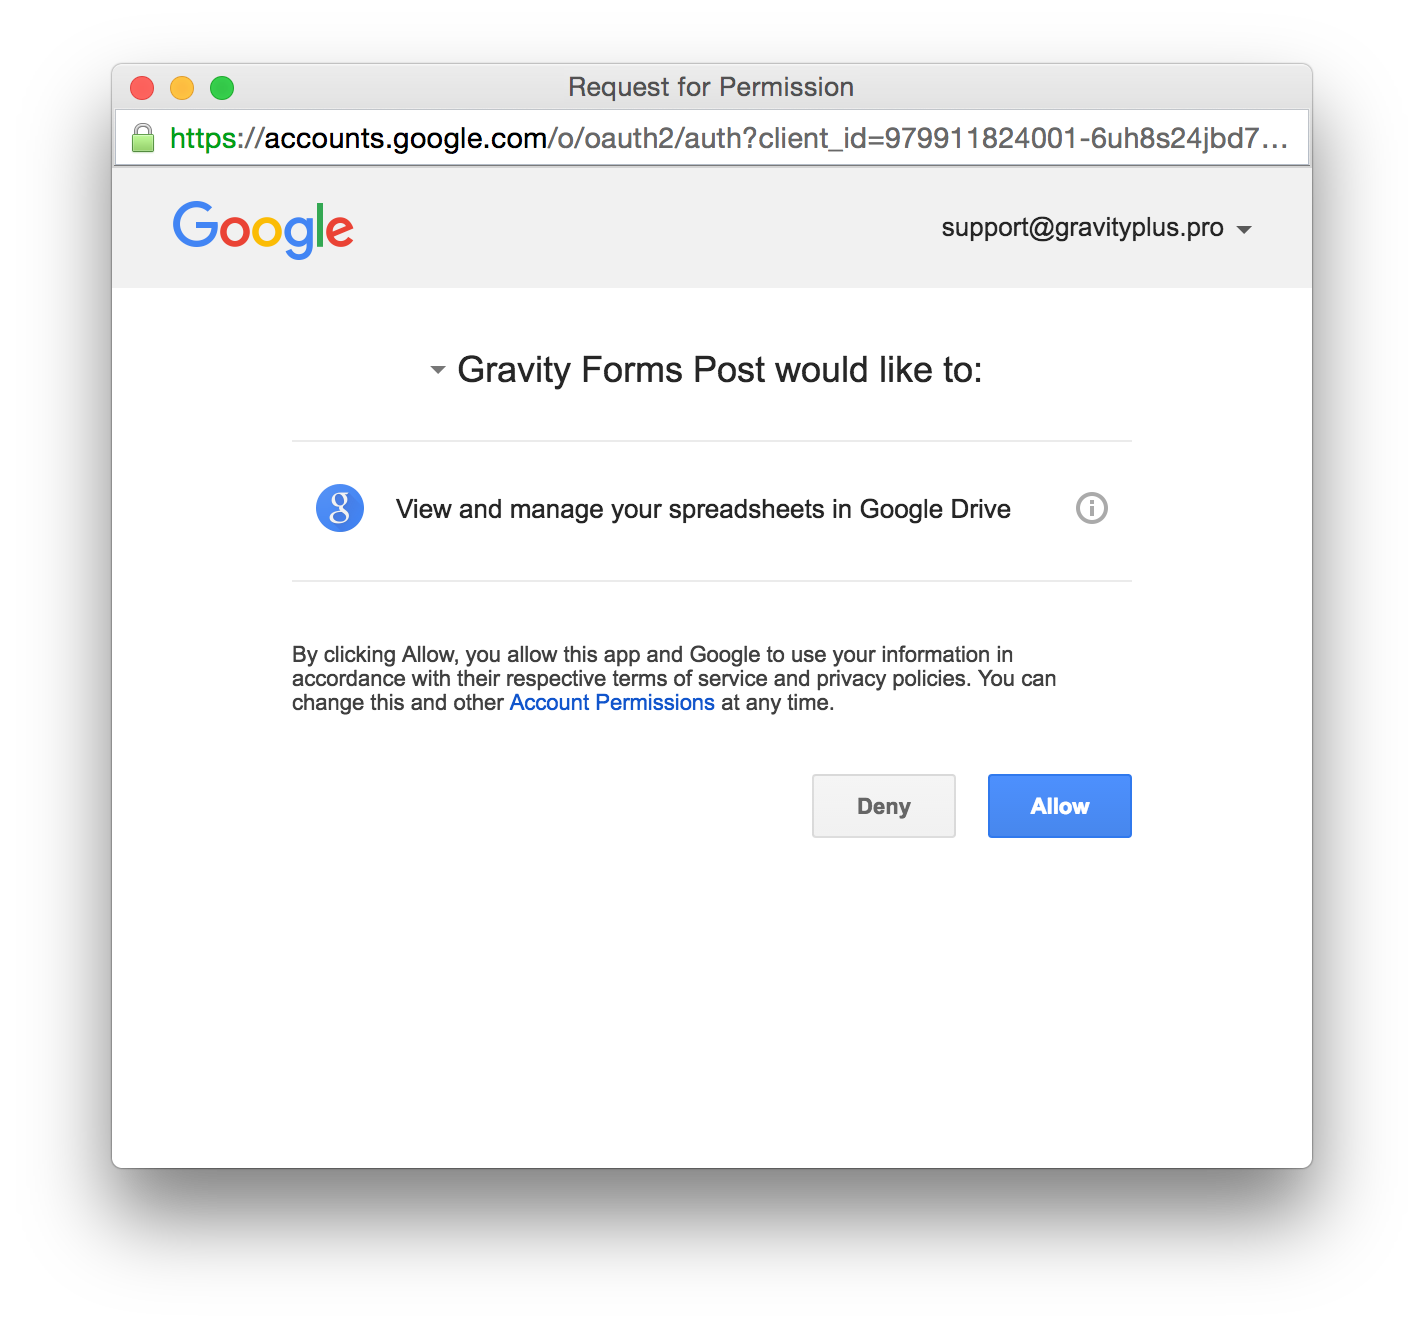 Gravity Forms to Google Sheets allow authorization